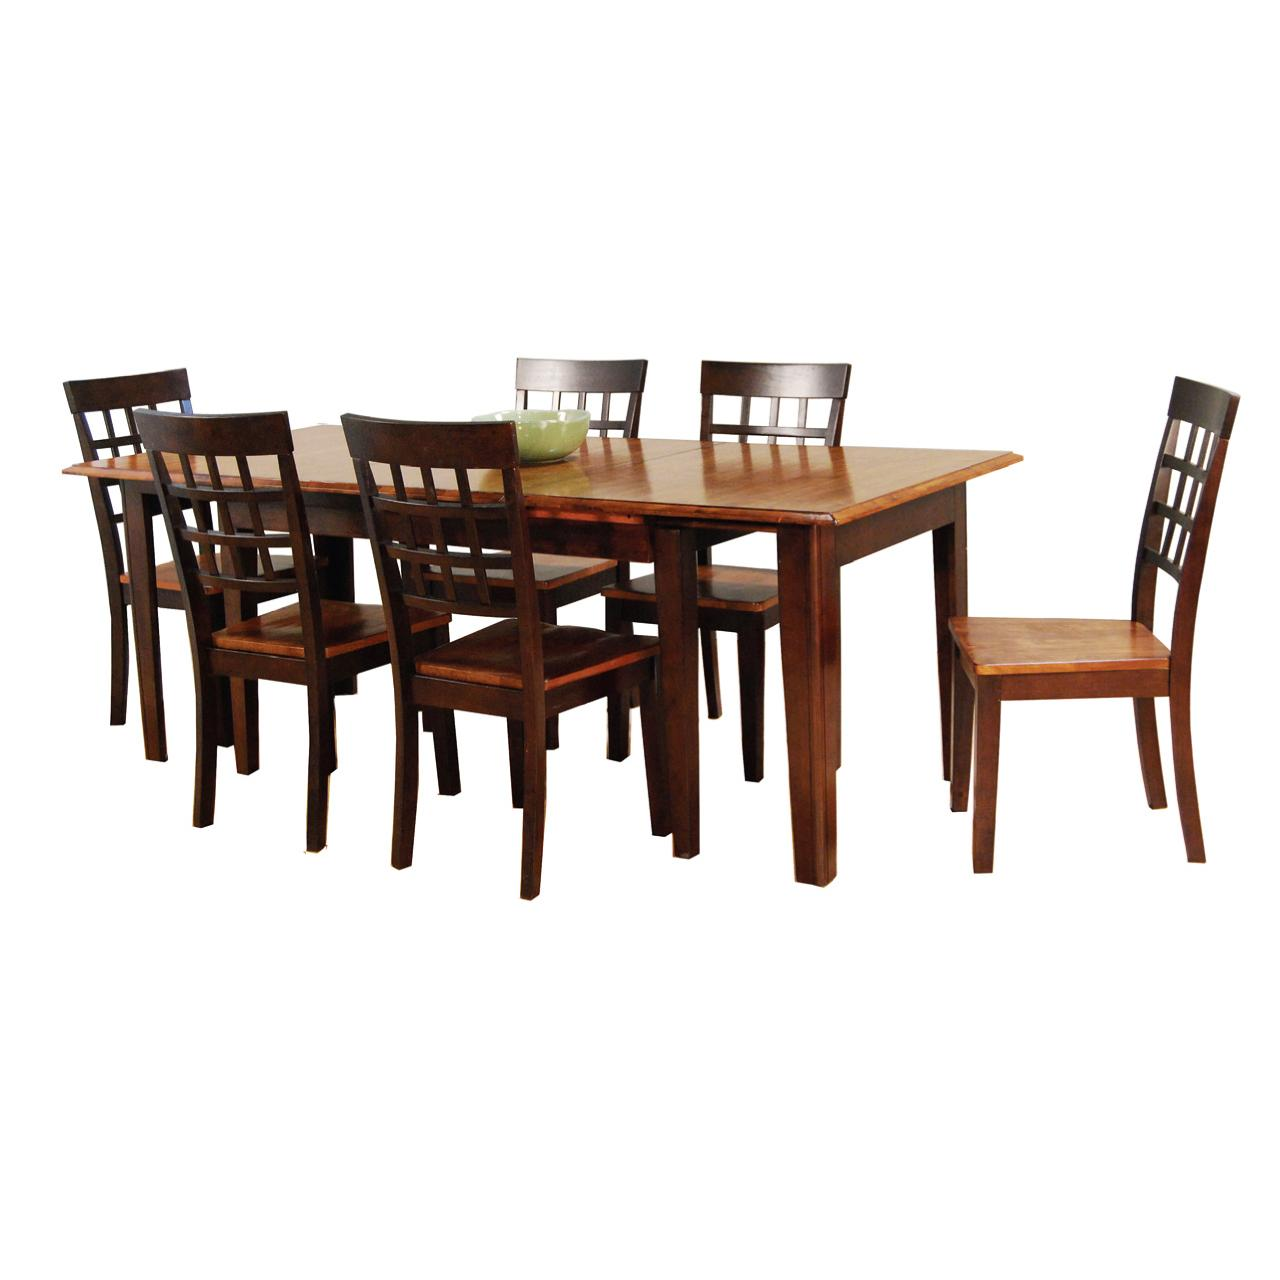 Etonnant AAmerica Bristol Point 7 Pc. Accordion Leg Table Set With Grid Back Chairs